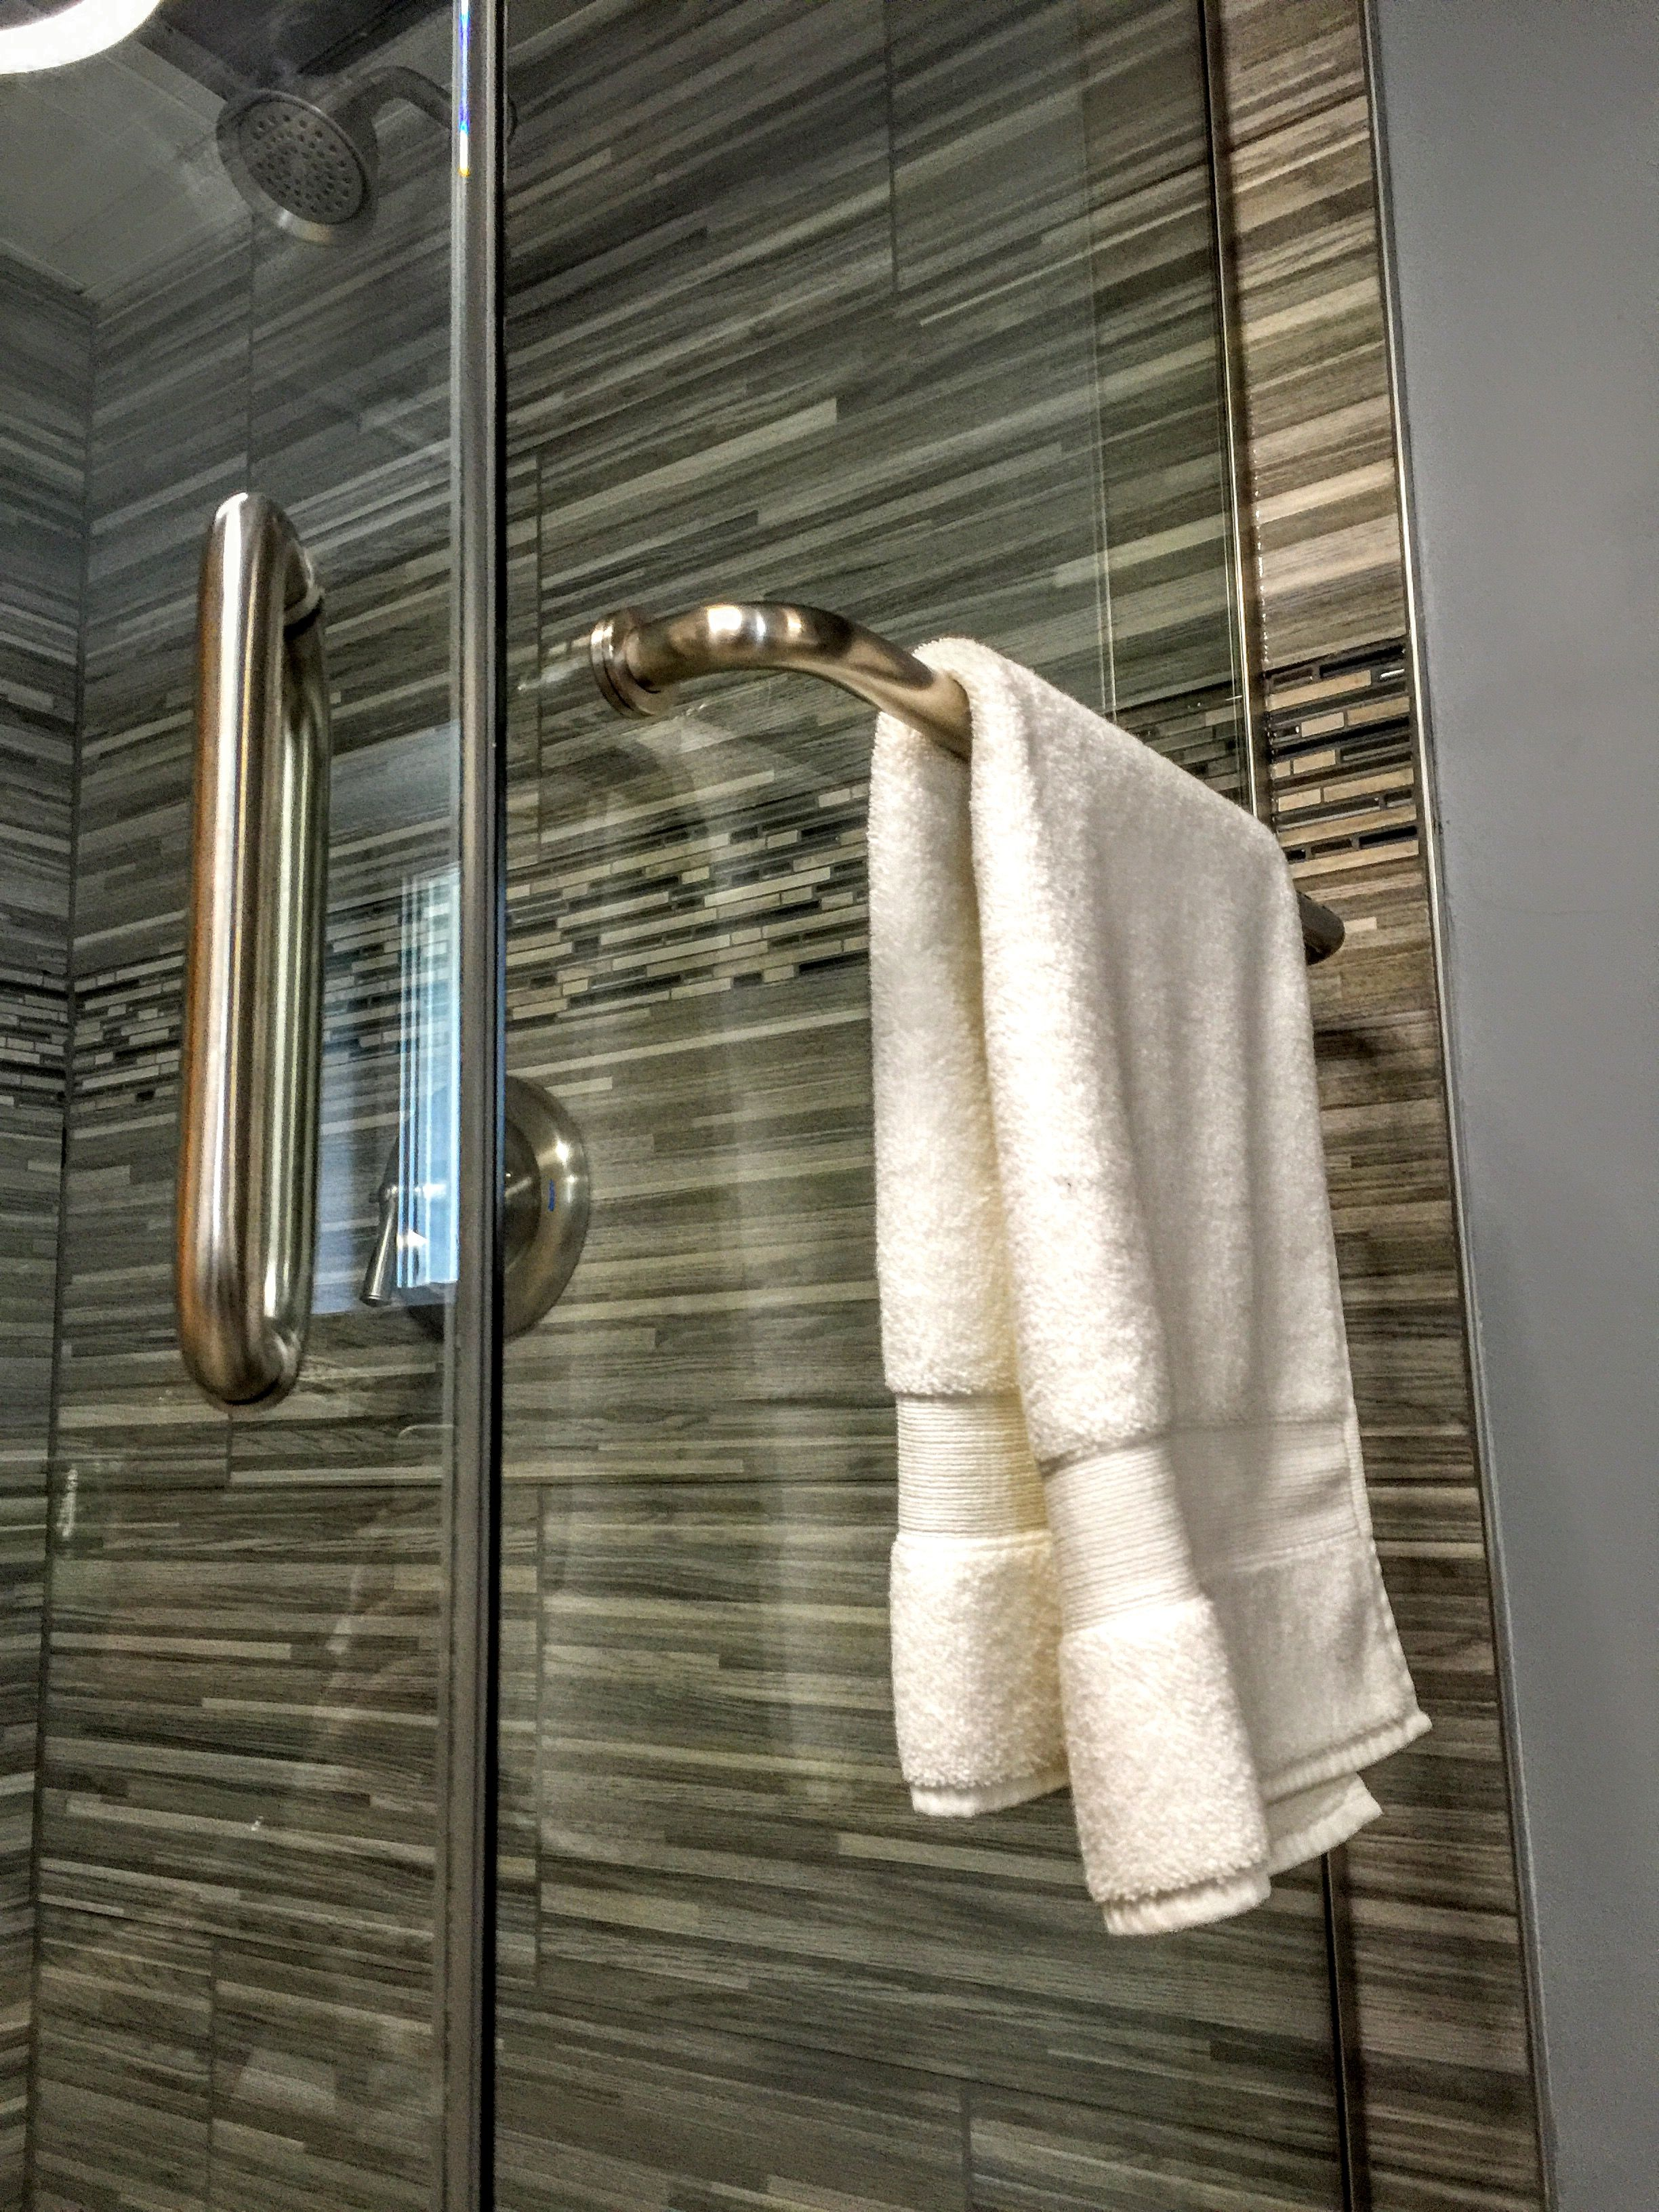 Have A Glass Shower Enclosure And Would Like To Add Towel Bar No